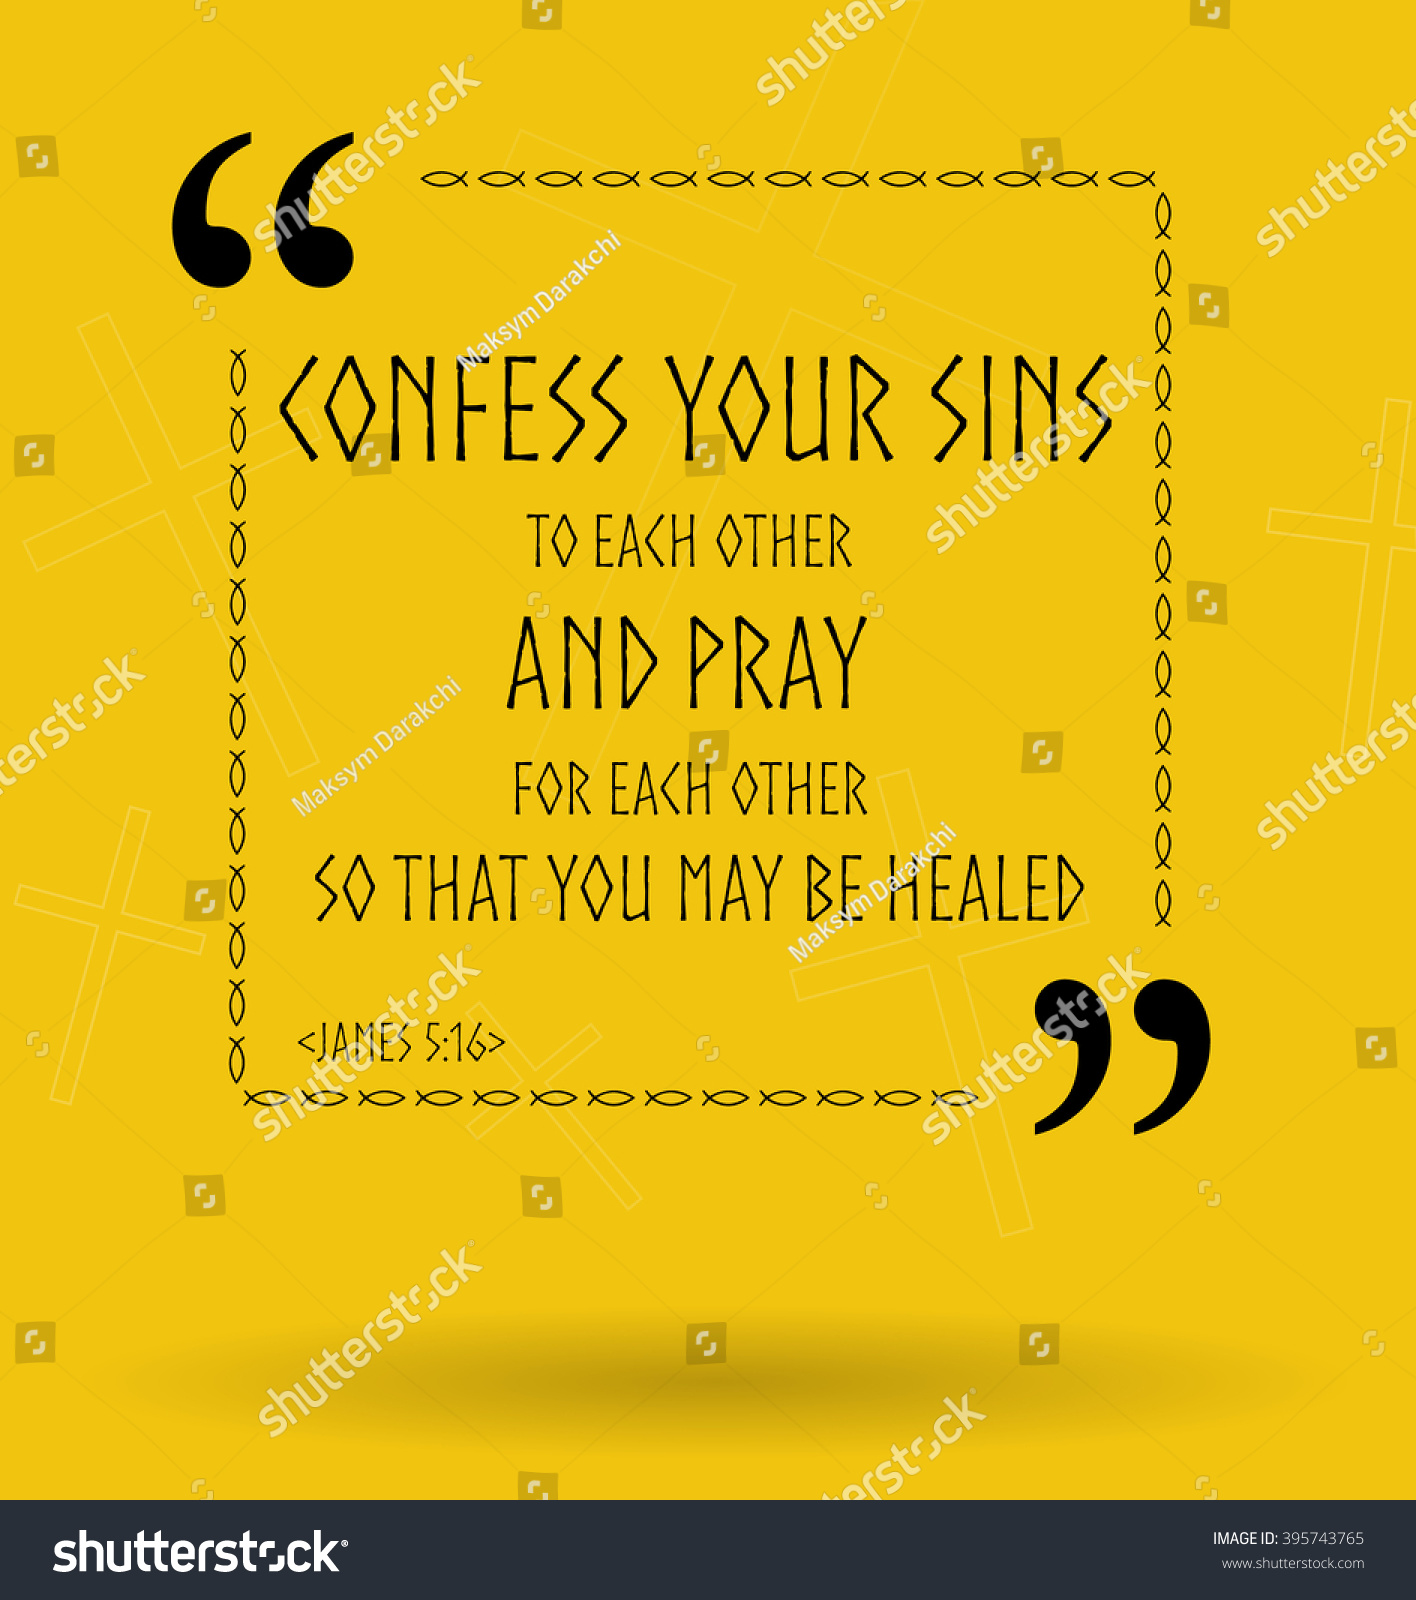 Fex Quotes Praying Quotes Captivating 31 Prayer Quotes Be Encouraged And